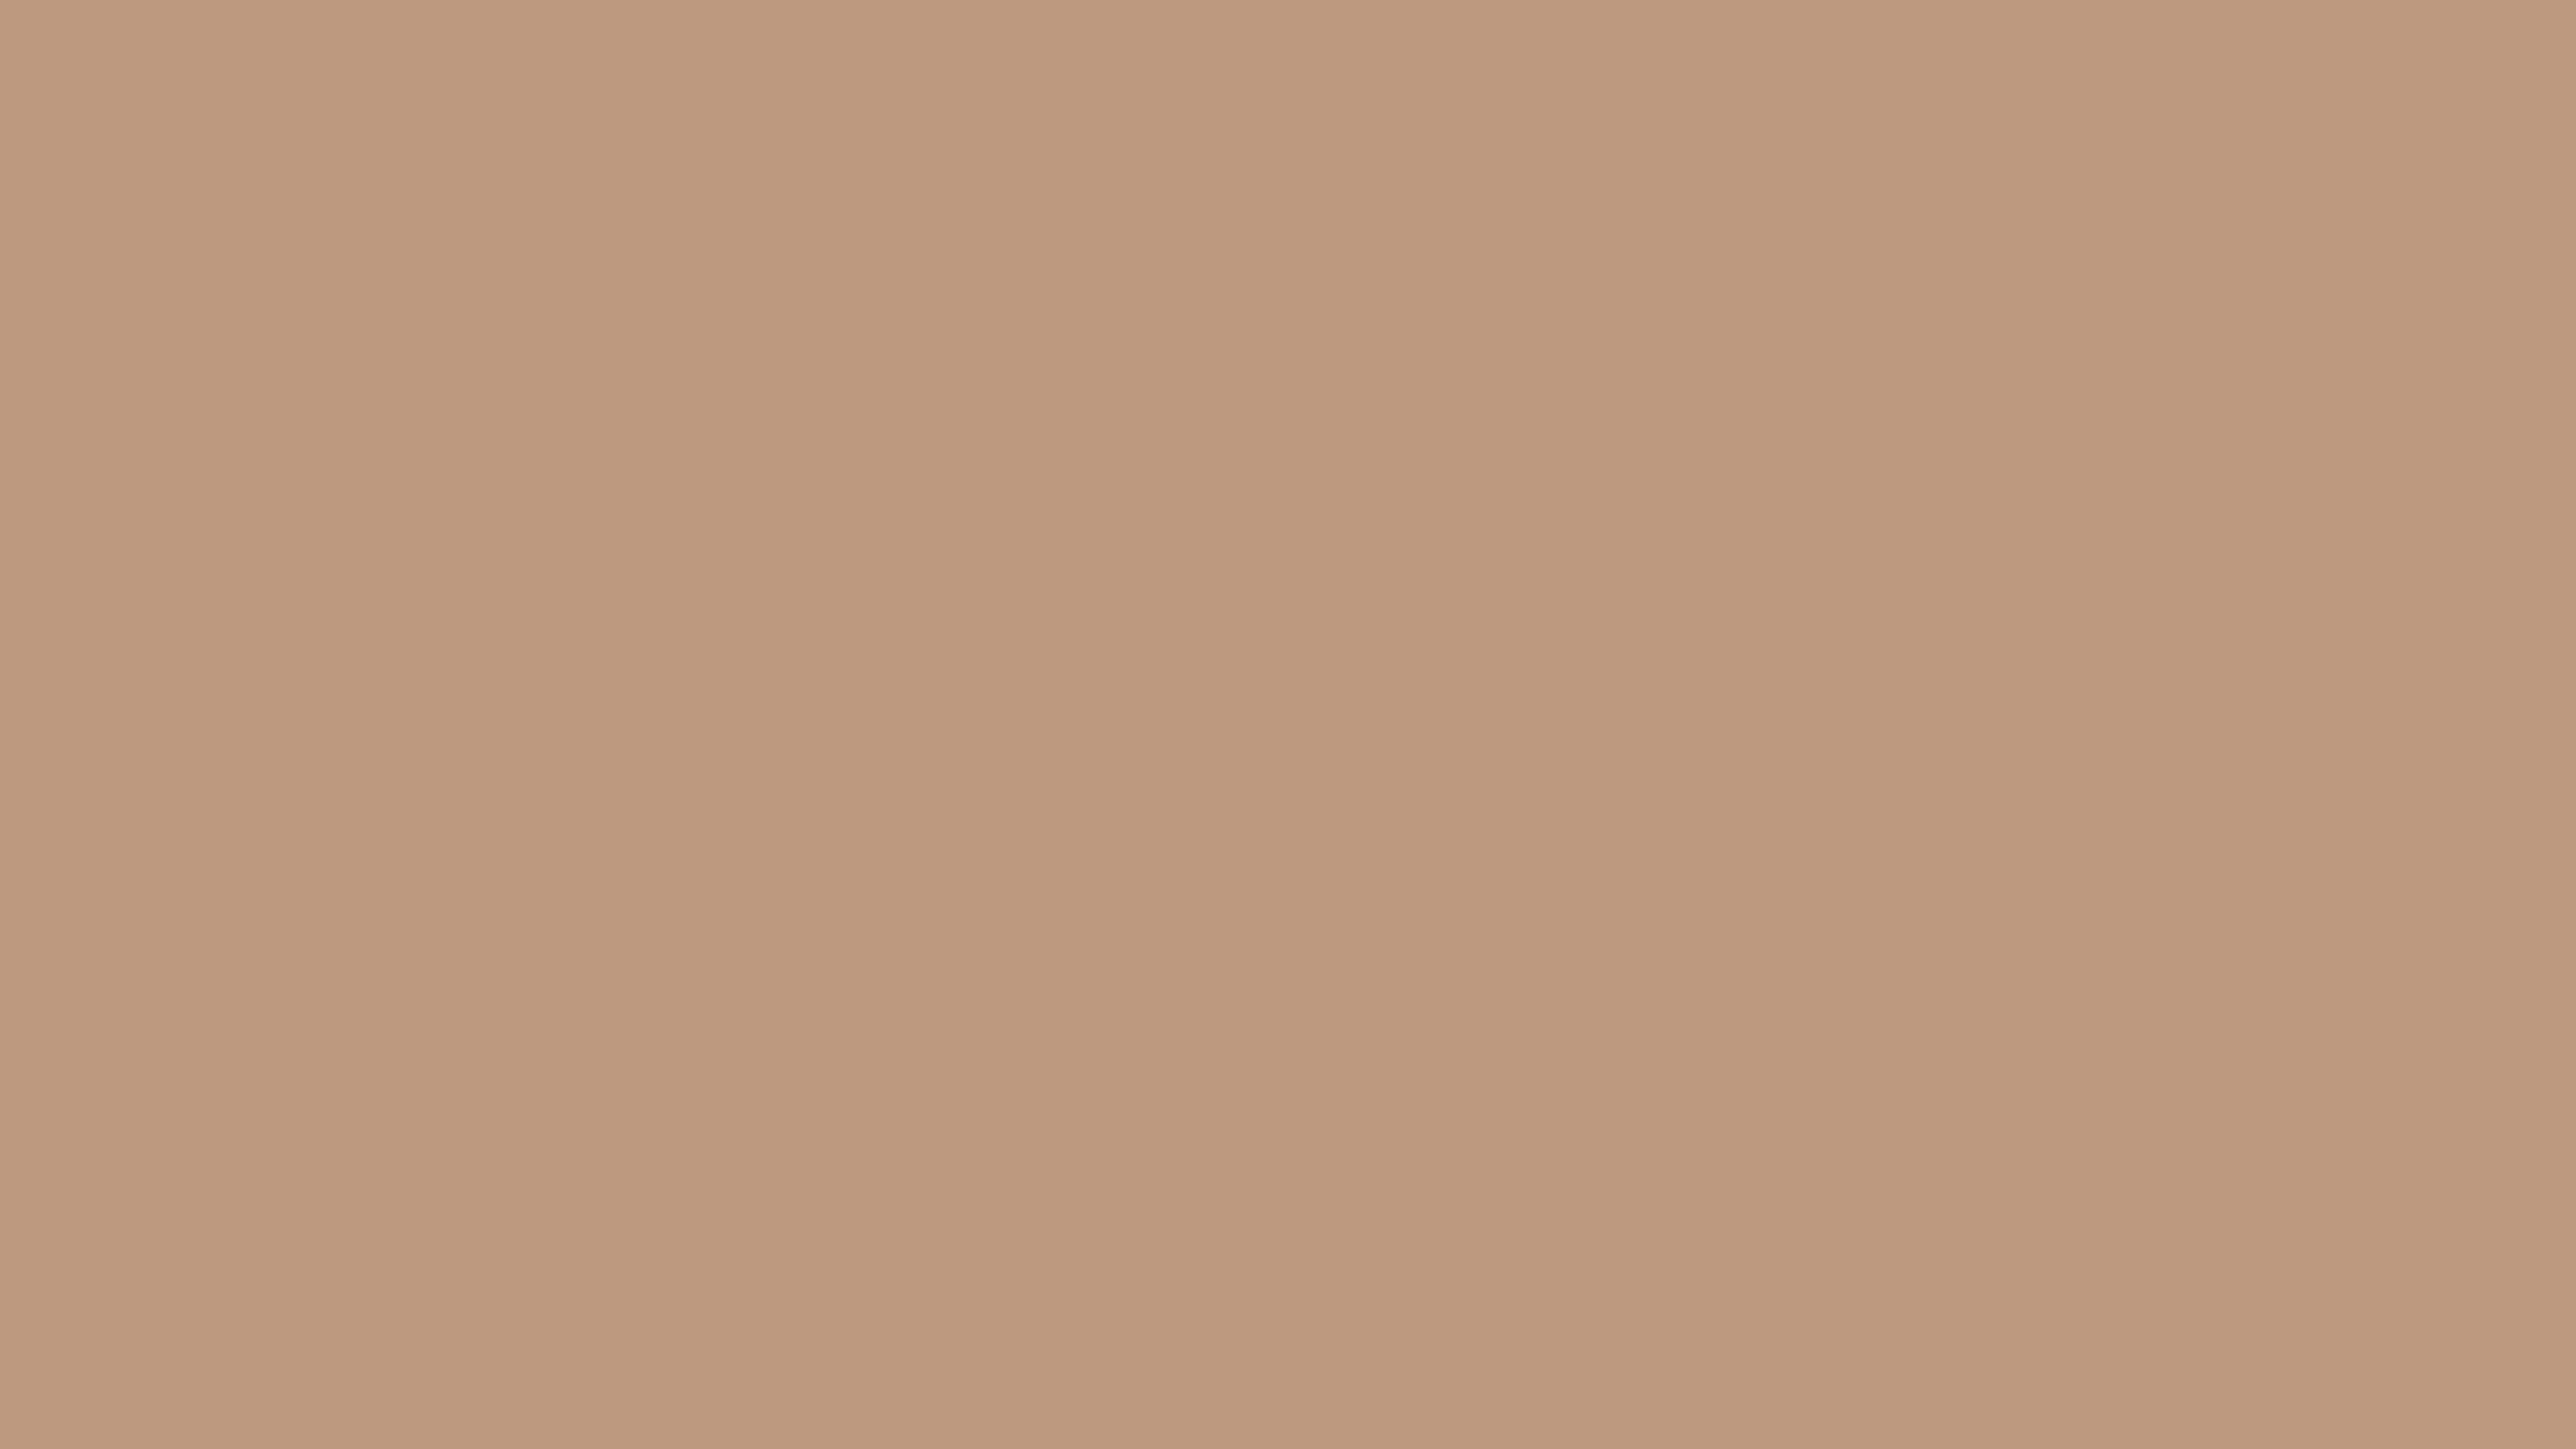 3840x2160 Pale Taupe Solid Color Background